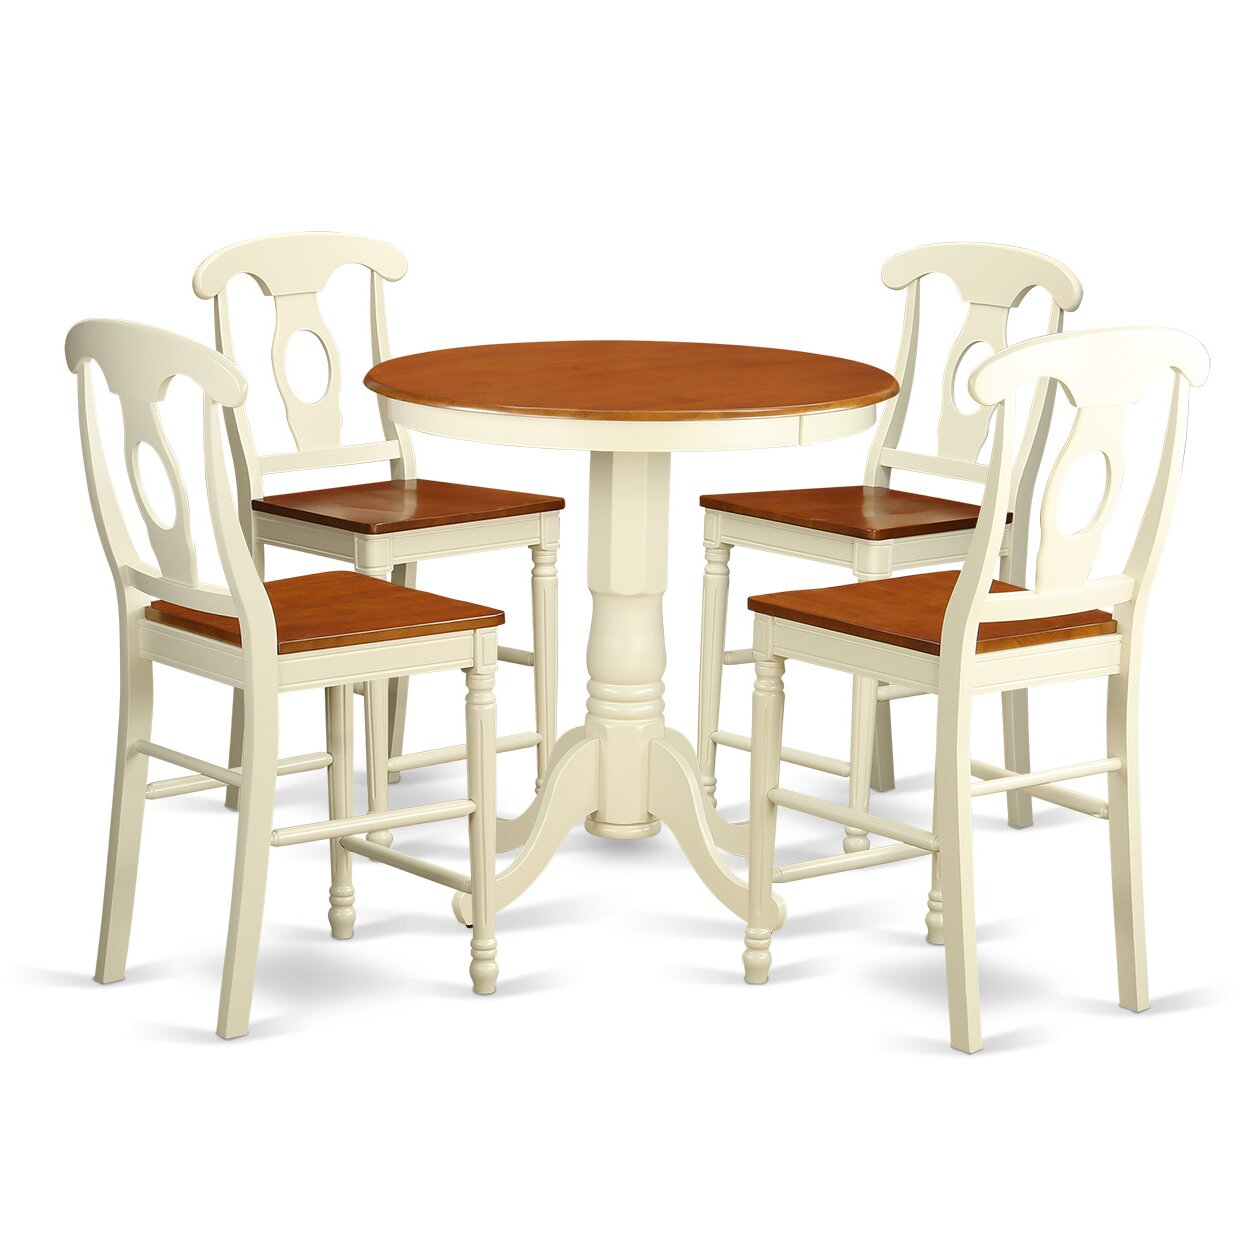 East west eden 5 piece counter height pub table set wayfair for 4 dining room table